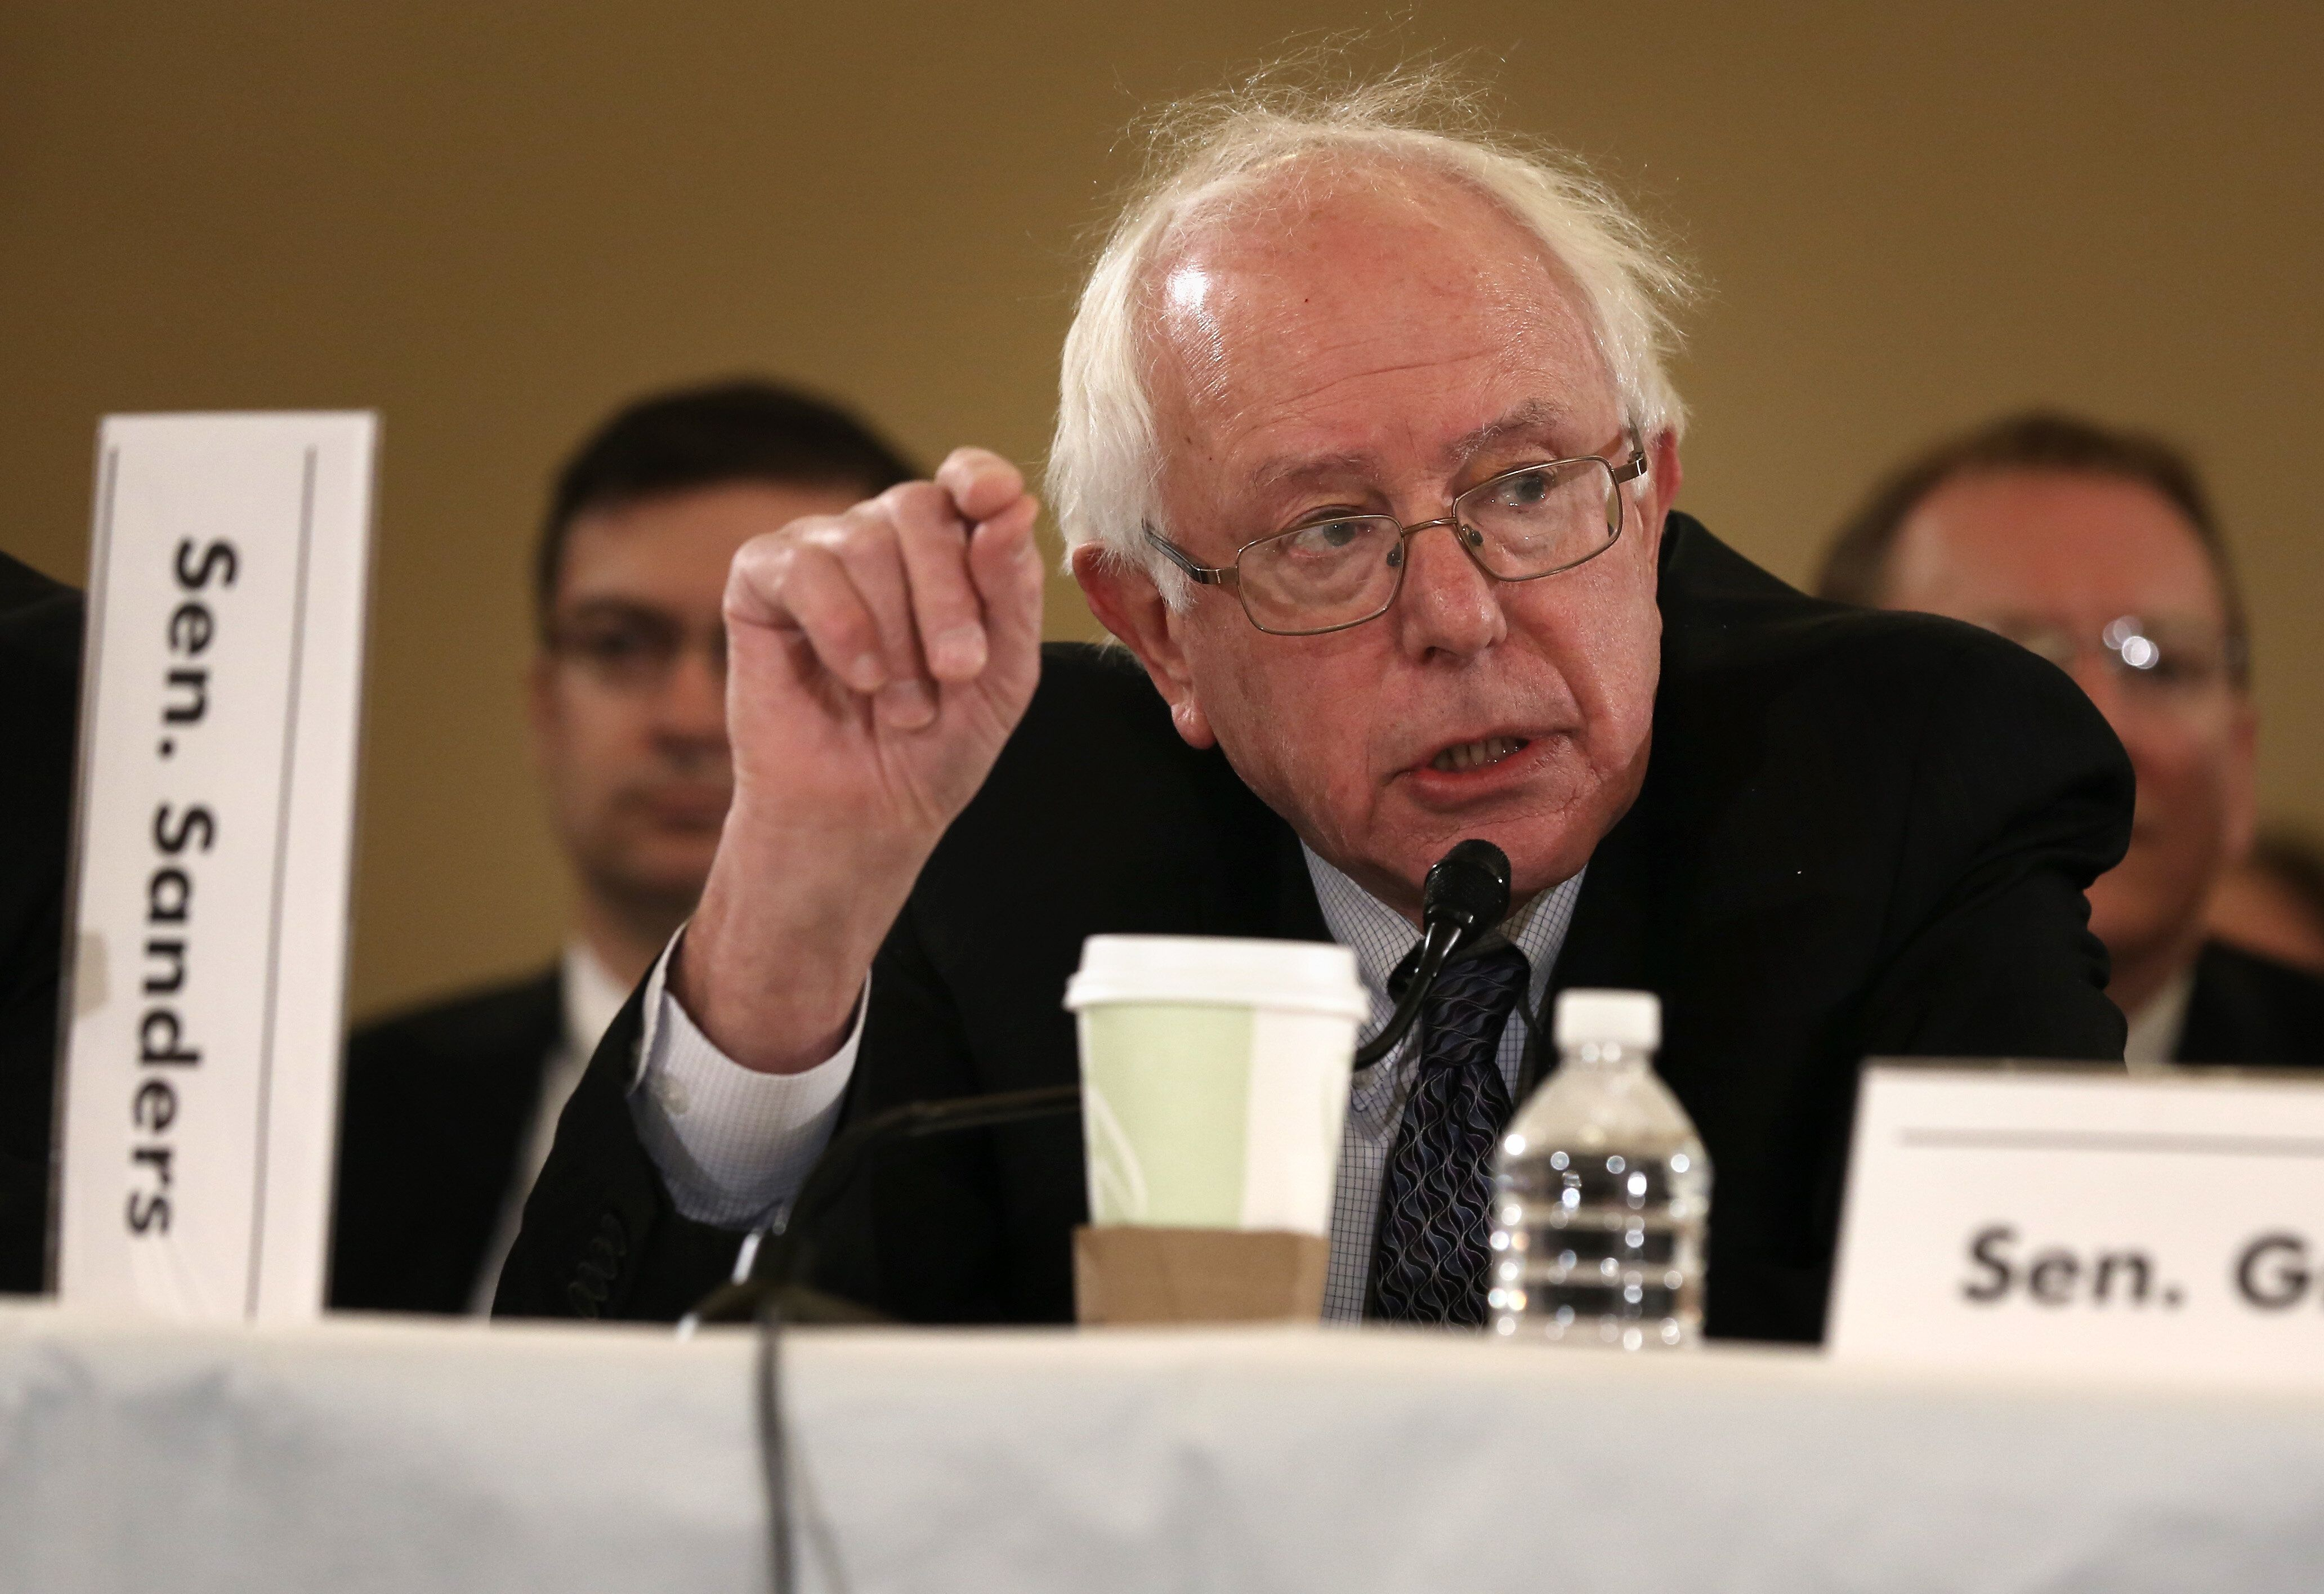 Sanders, seen here at a budget conference in Nov. 2013, introduced a single-payer health care bill that year that receiv